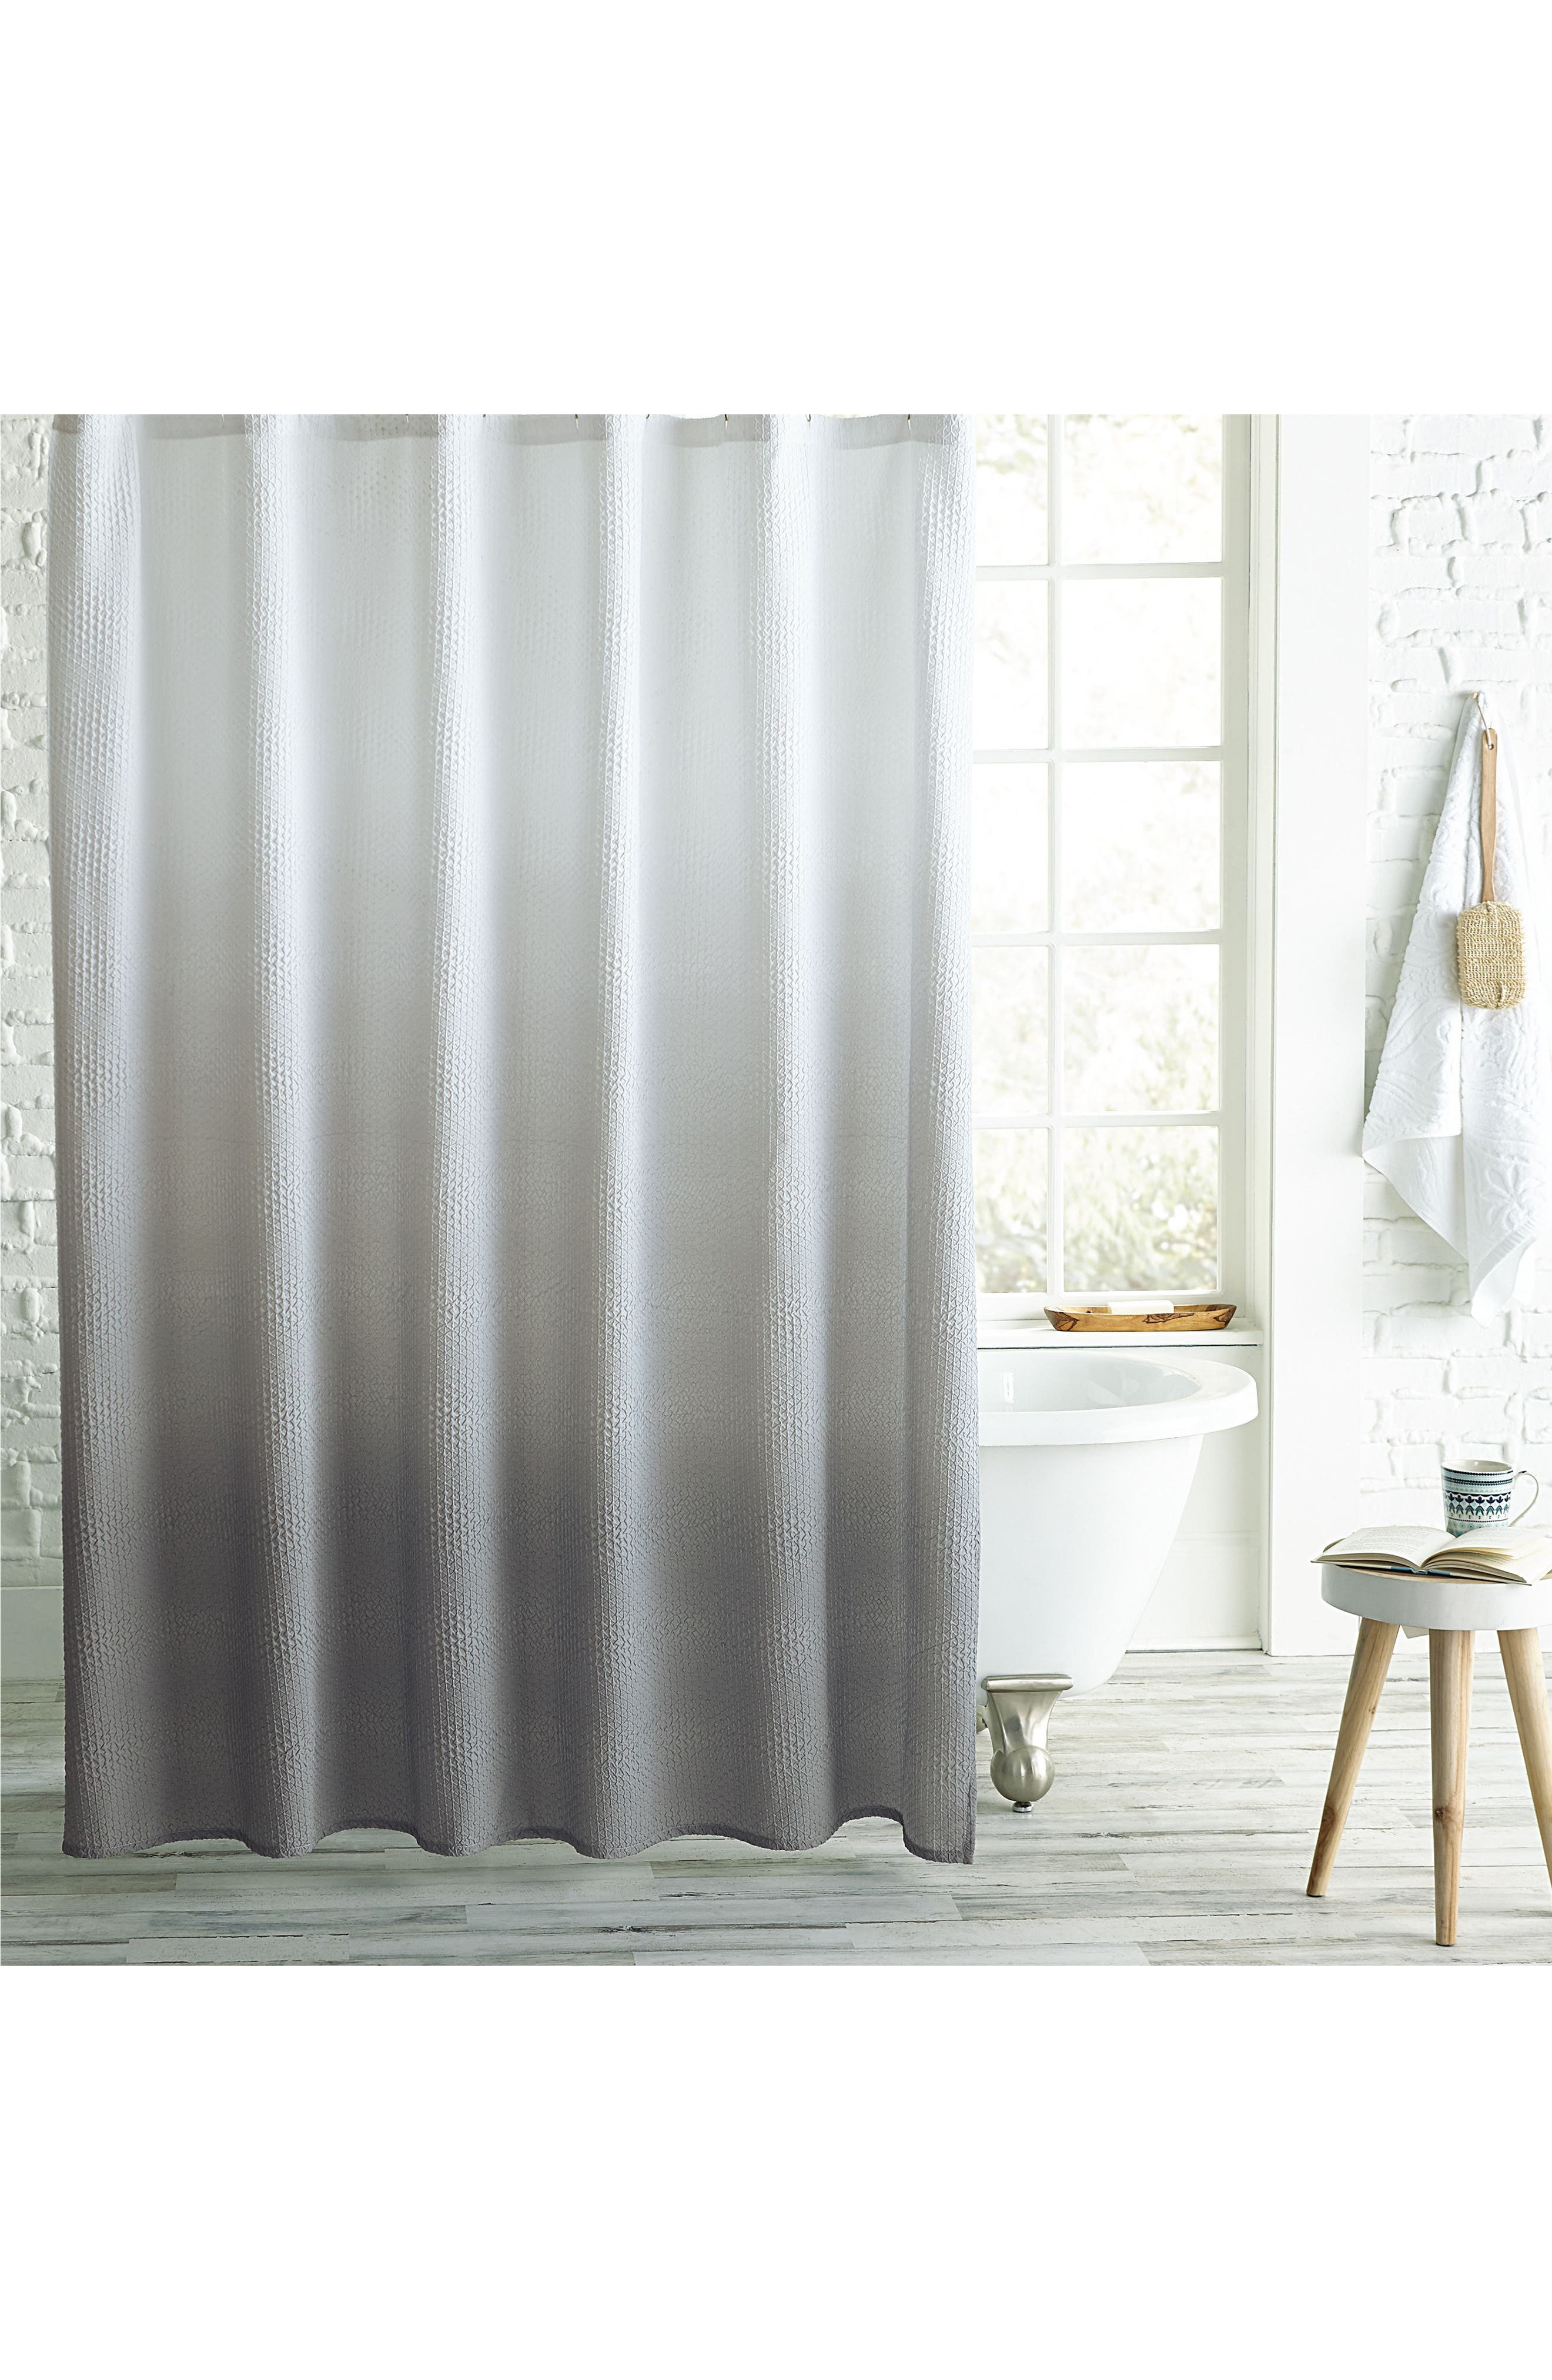 Ombré Microsculpt Shower Curtain,                             Main thumbnail 1, color,                             GREY